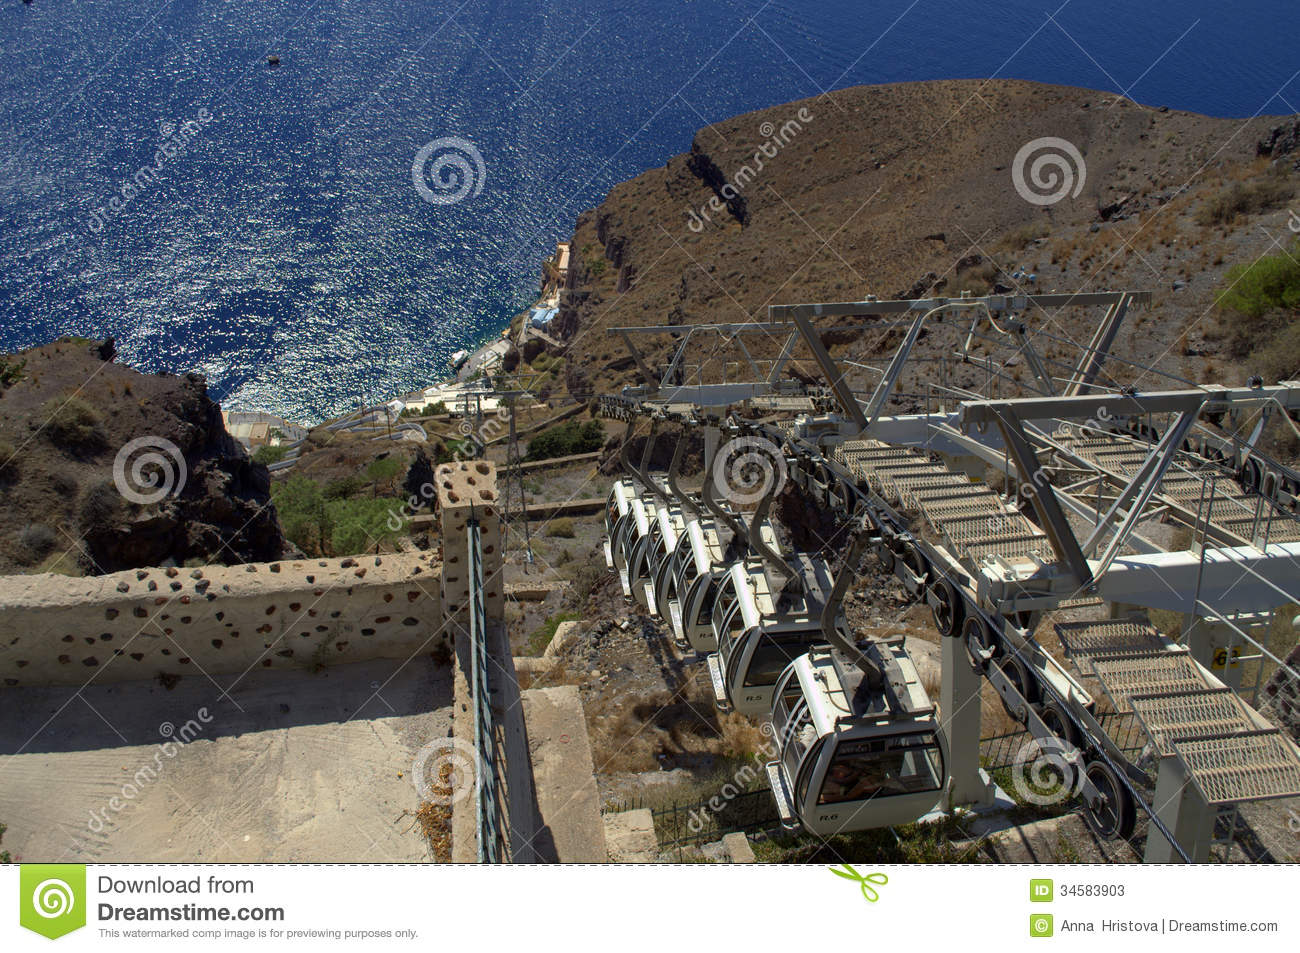 Cabina di funivia santorini immagine stock immagine for Cabina di brezza autunnale gatlinburg